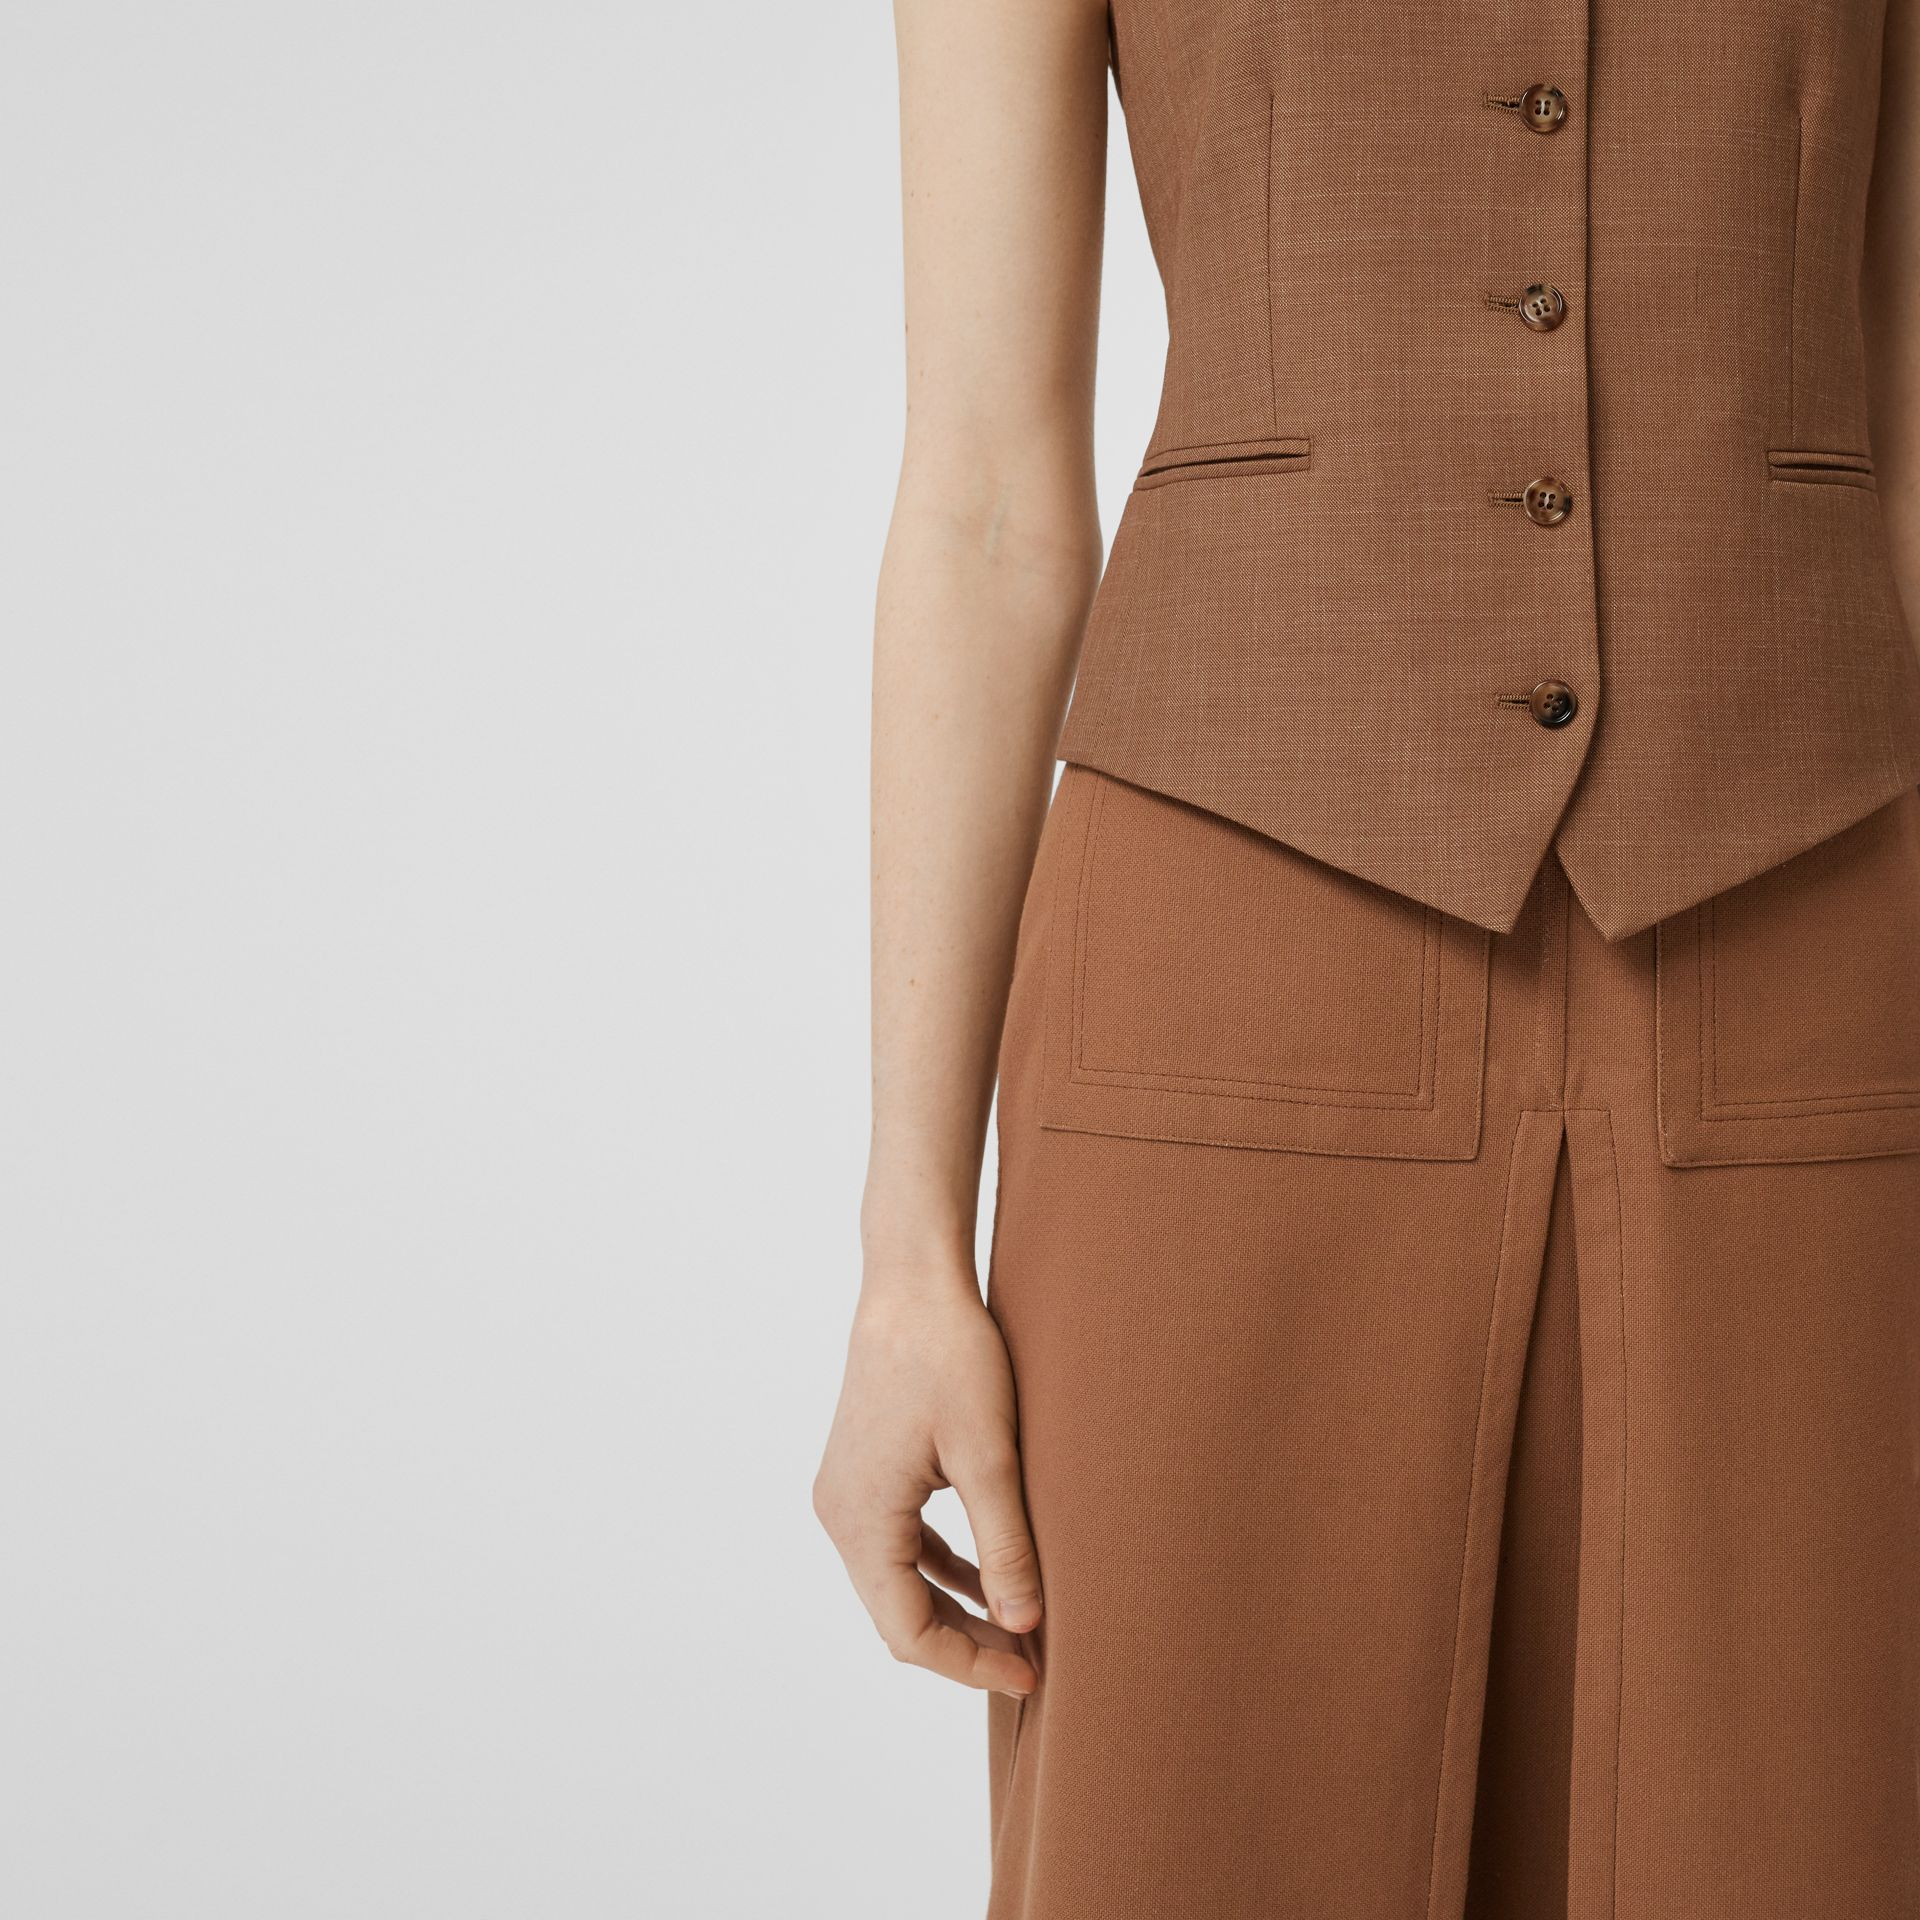 Satin Panel Mohair Wool Blend Tailored Waistcoat in Bronze - Women | Burberry United States - gallery image 5